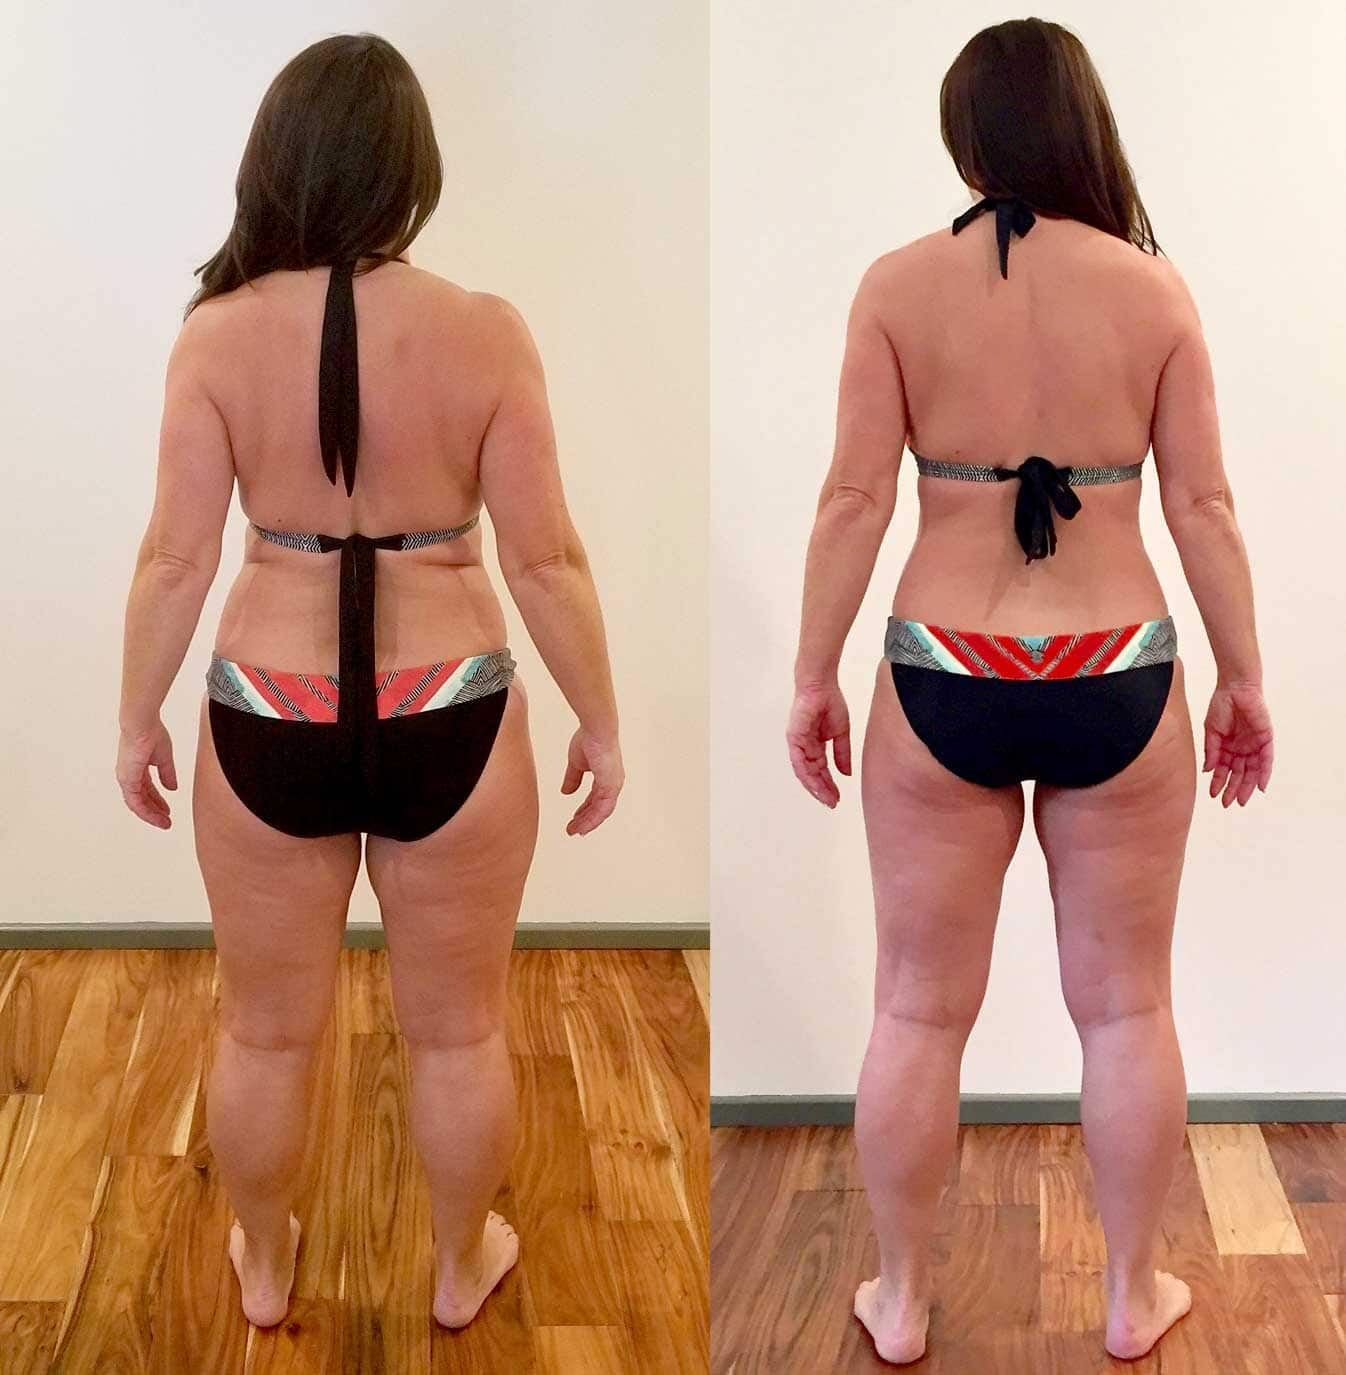 8-week-weight-loss-before-and-after-Lauren-O-Back